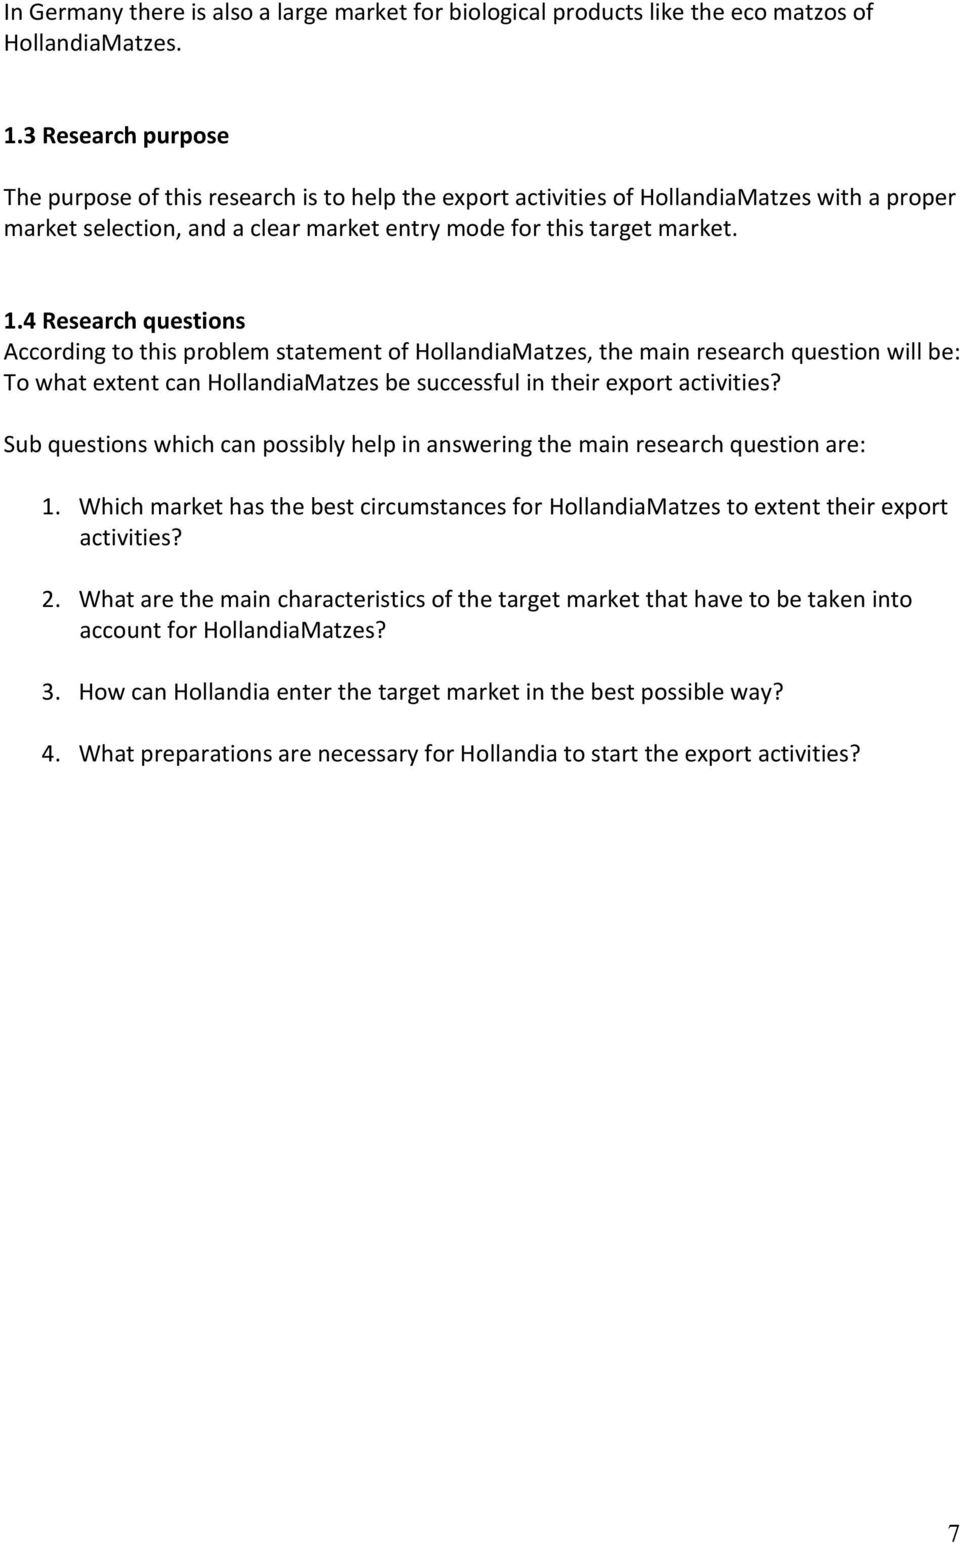 4 Research questions According to this problem statement of HollandiaMatzes, the main research question will be: To what extent can HollandiaMatzes be successful in their export activities?